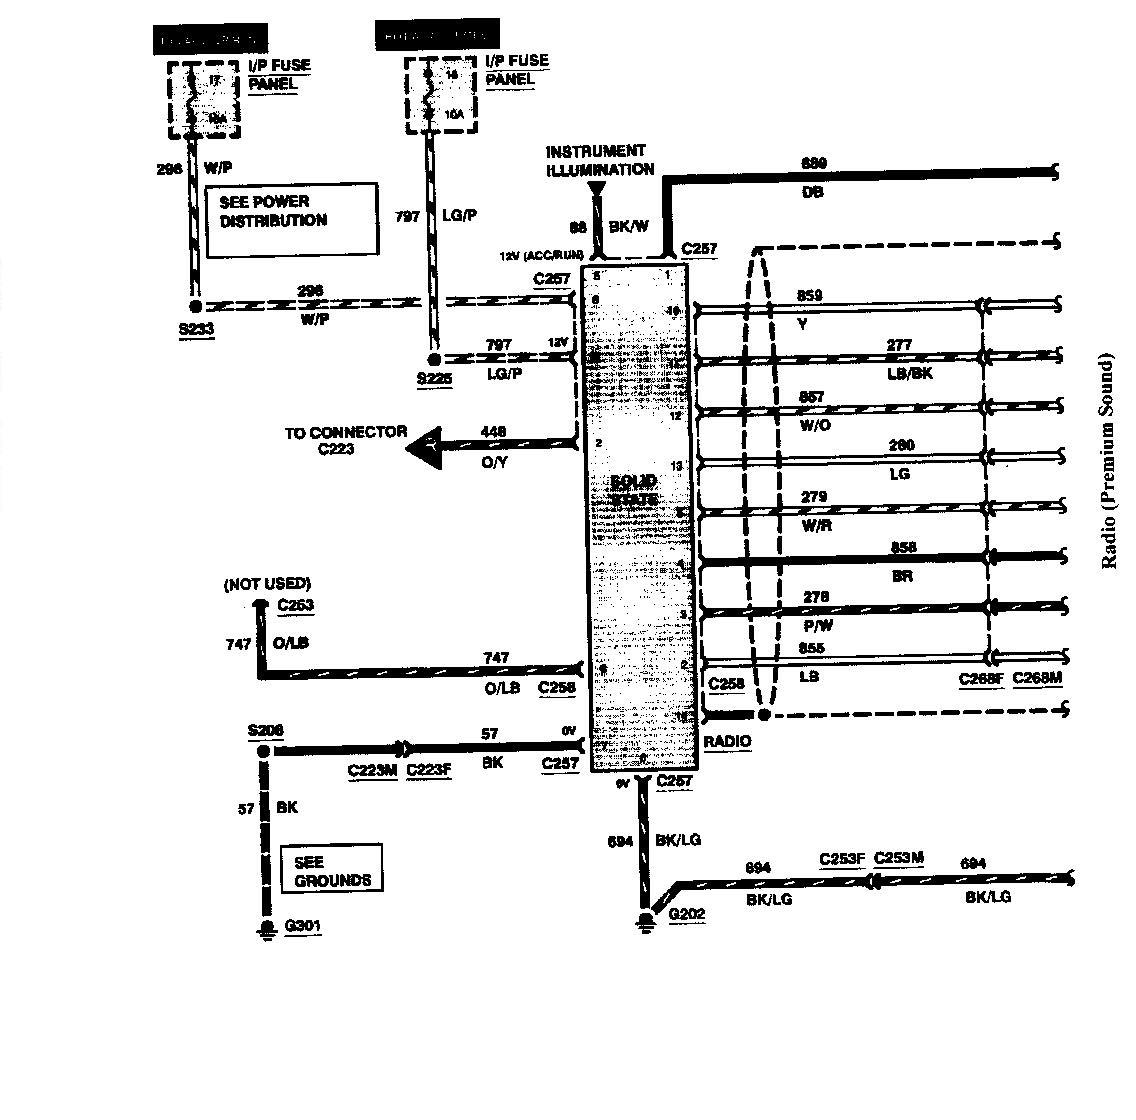 1998 Lincoln Mark Viii Fuse Box Diagram Quick Start Guide Of 1994 Town Car 1993 Free Engine Image For User Manual Download